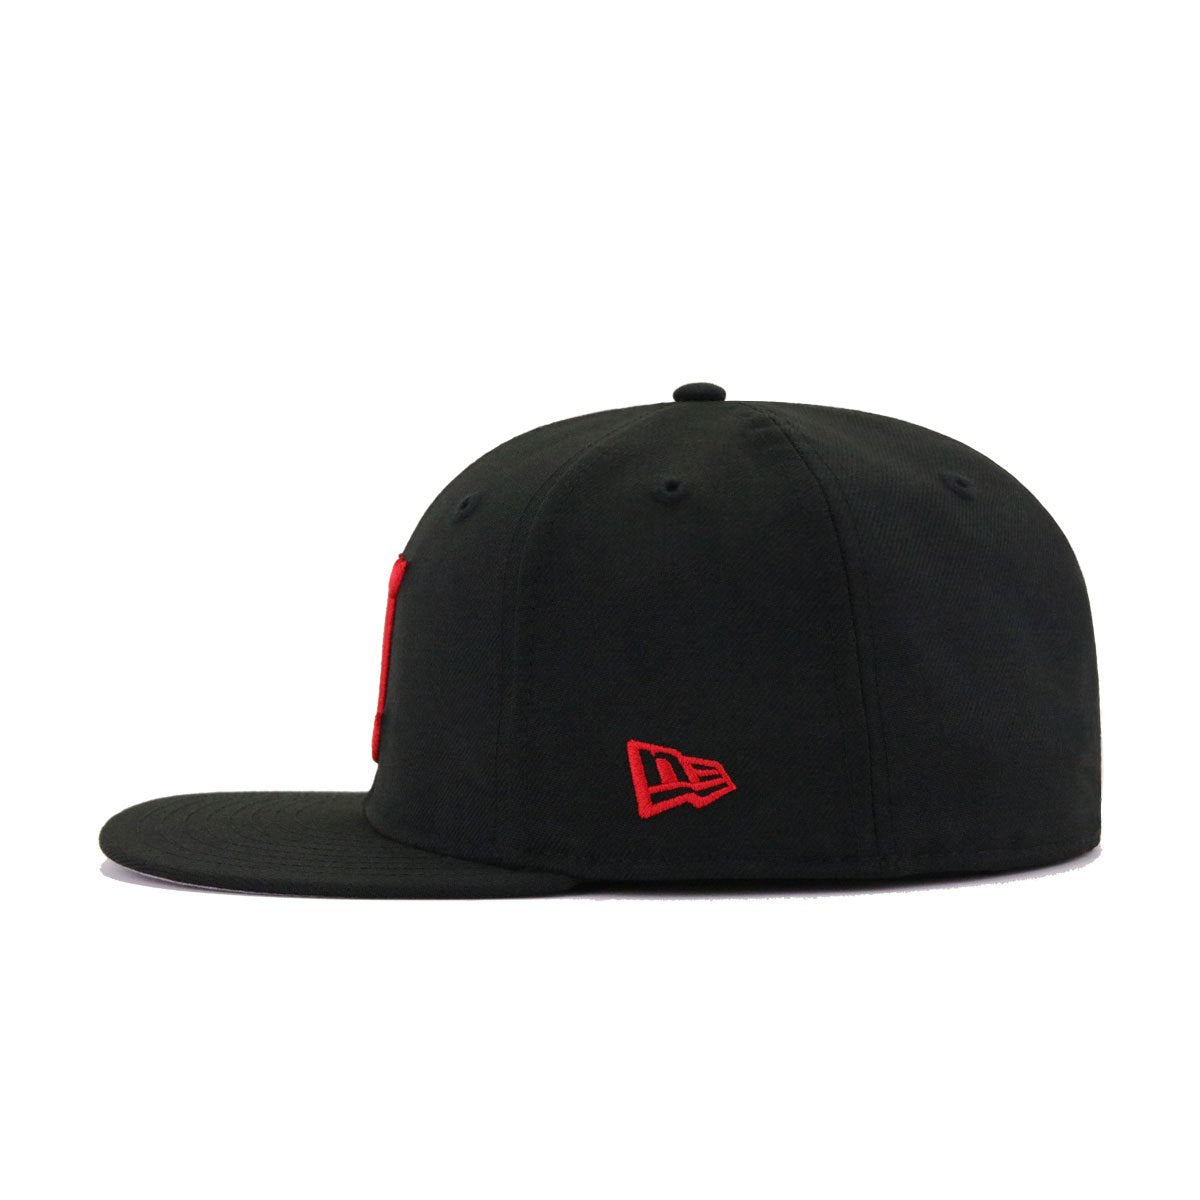 Cincinnati Reds Black 150th Anniversary New Era 59Fifty Fitted